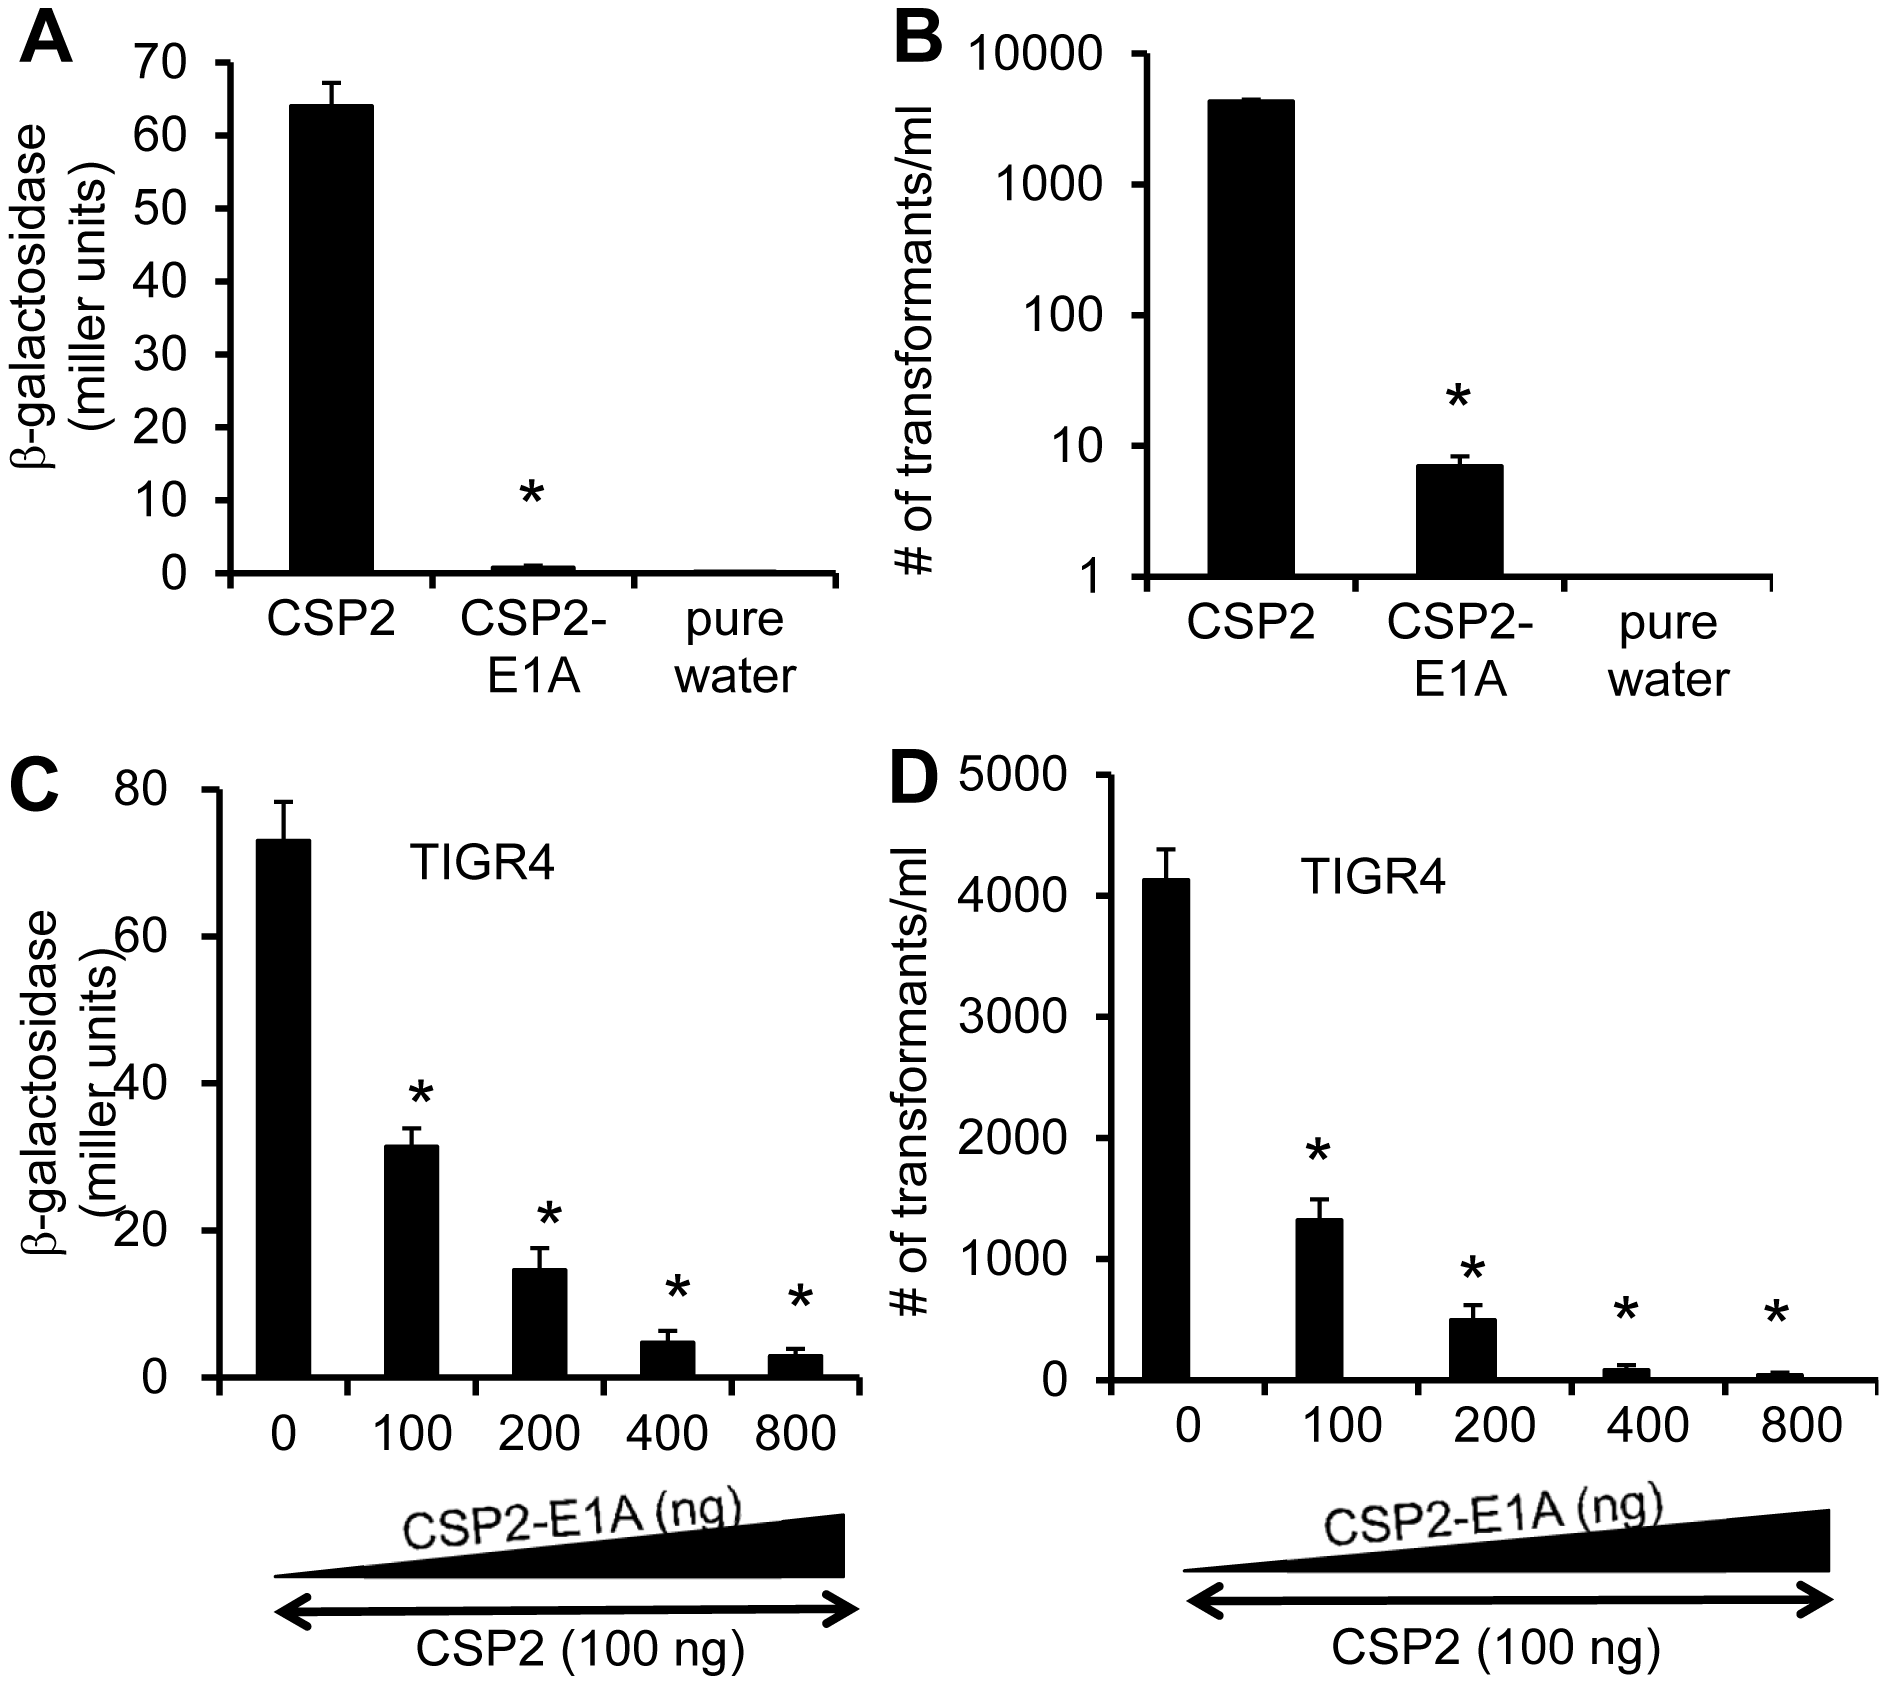 CSP2-E1A inhibits competence development and transformation in ComD2 strain TIGR4.